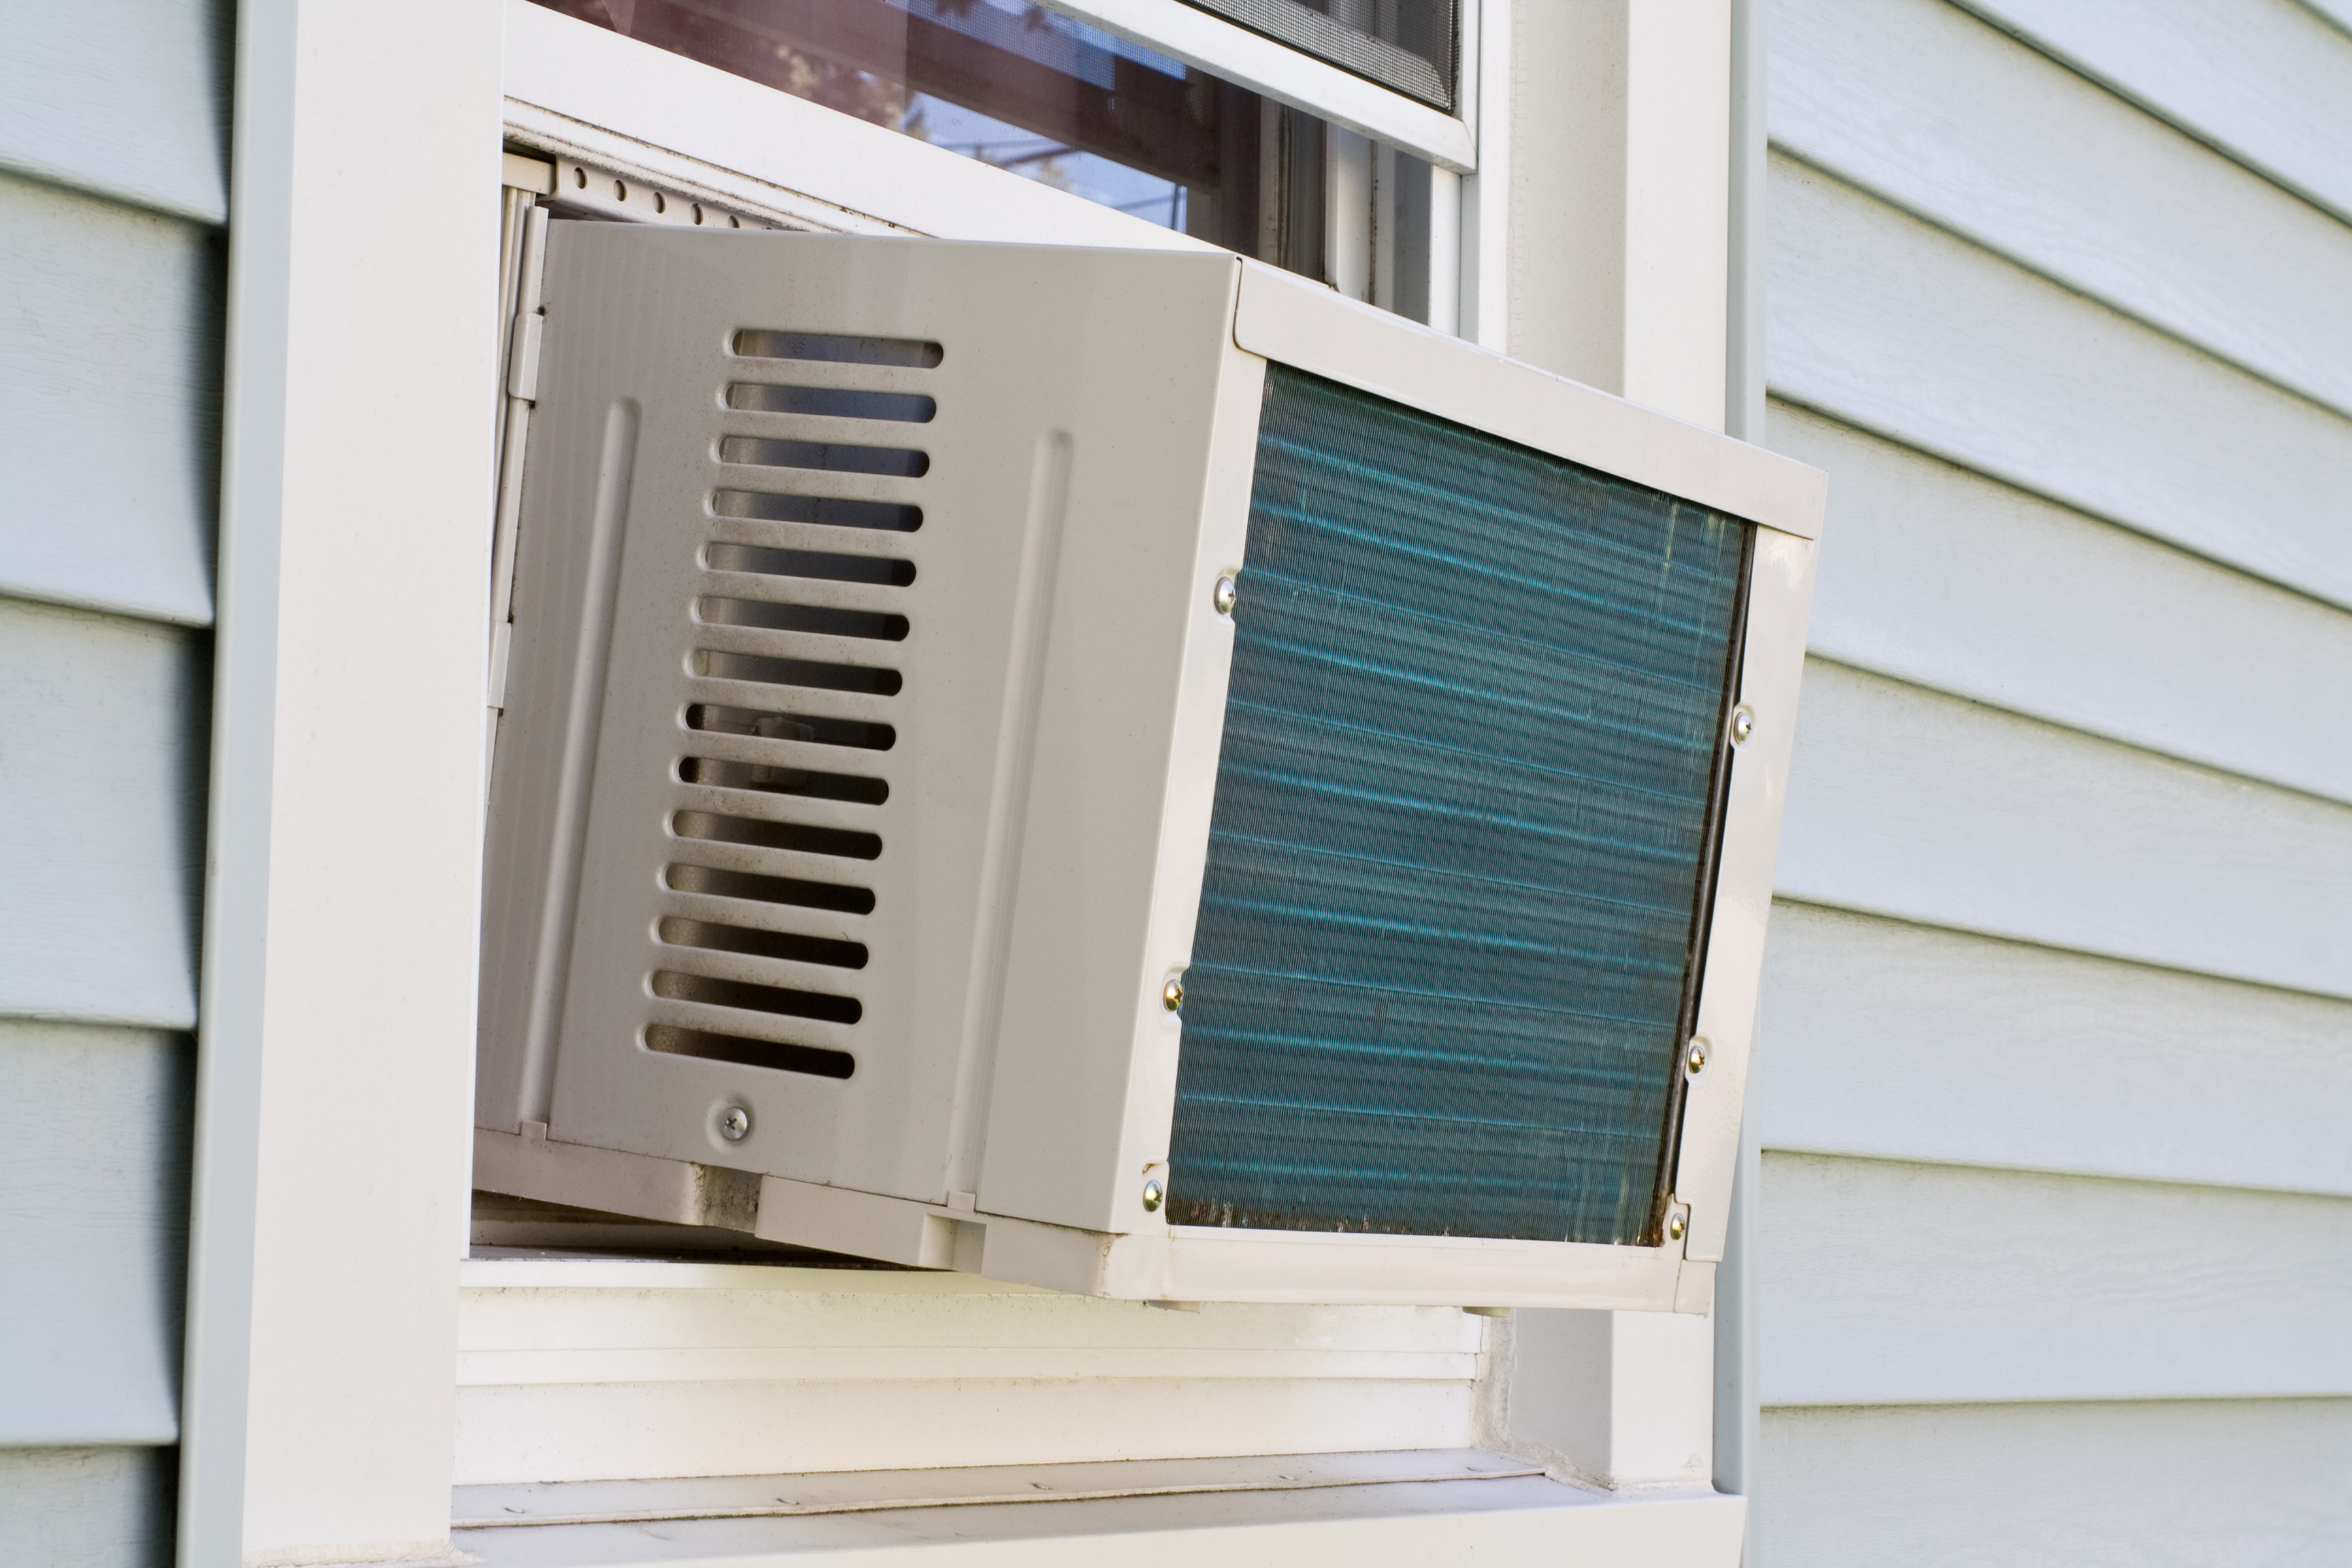 The exterior of a house with a brand new AC unit in the window.